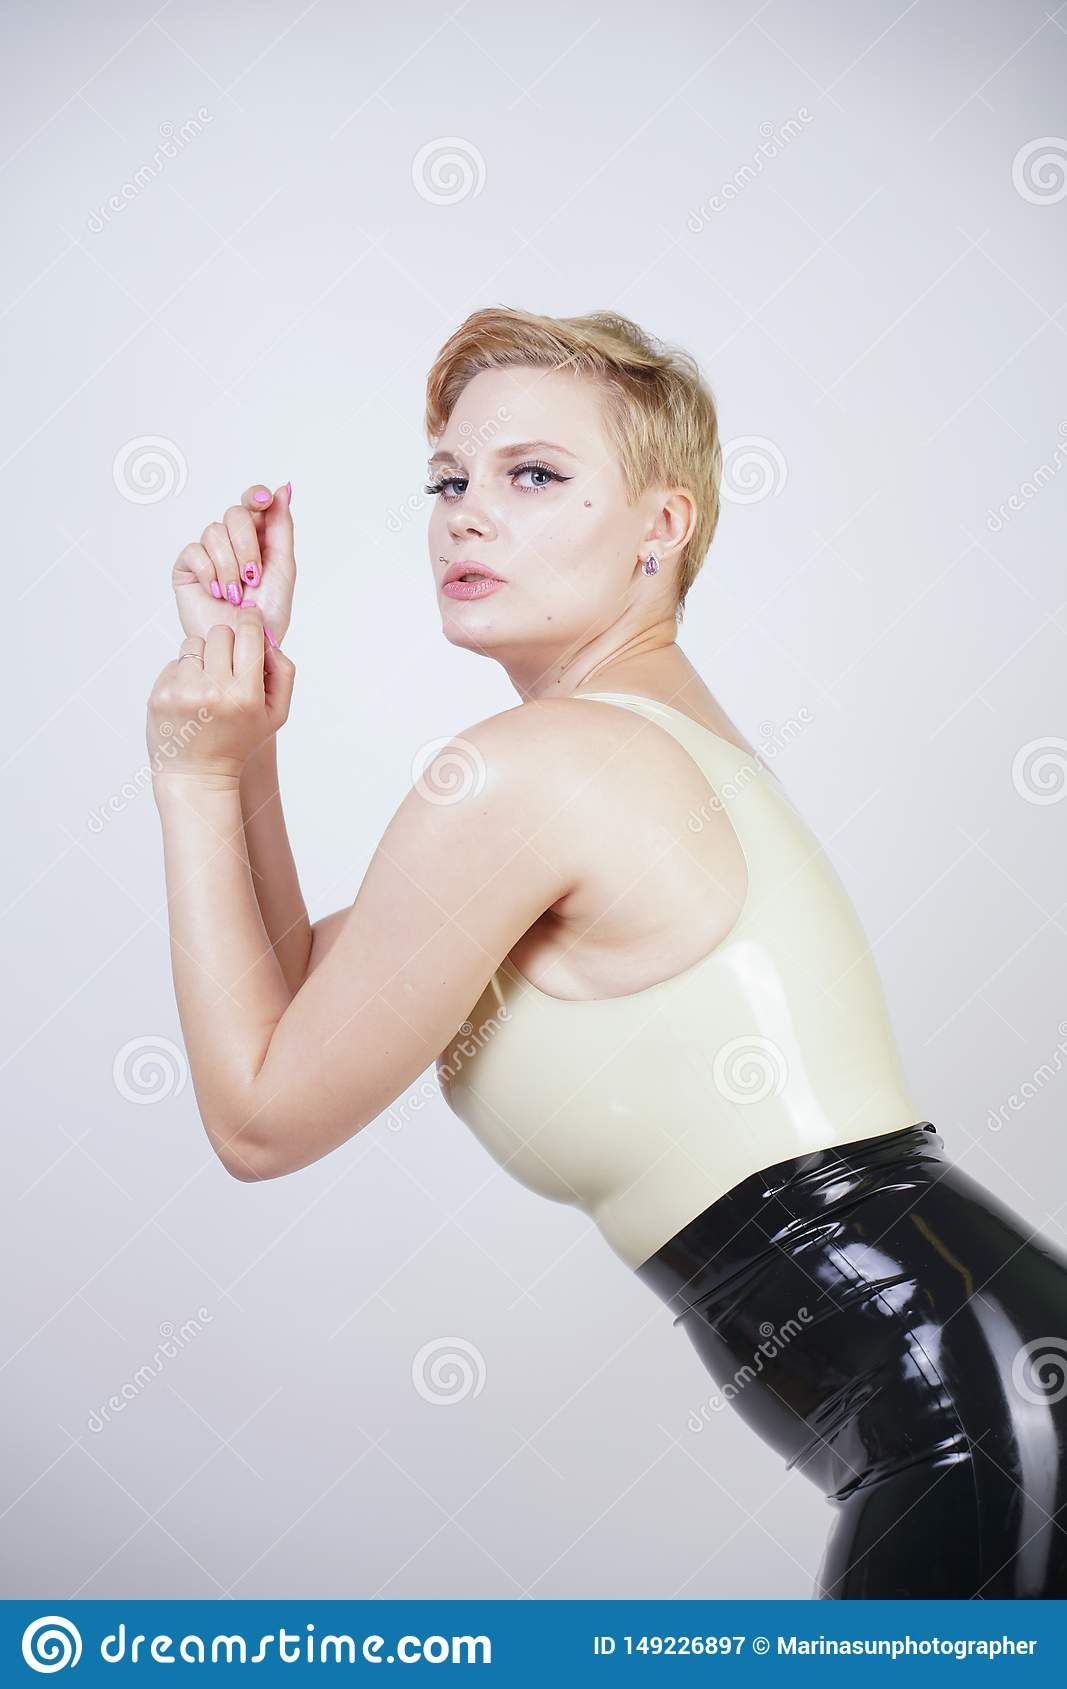 Hot short hair blonde girl with curvy body wearing latex rubber dress on white studio background